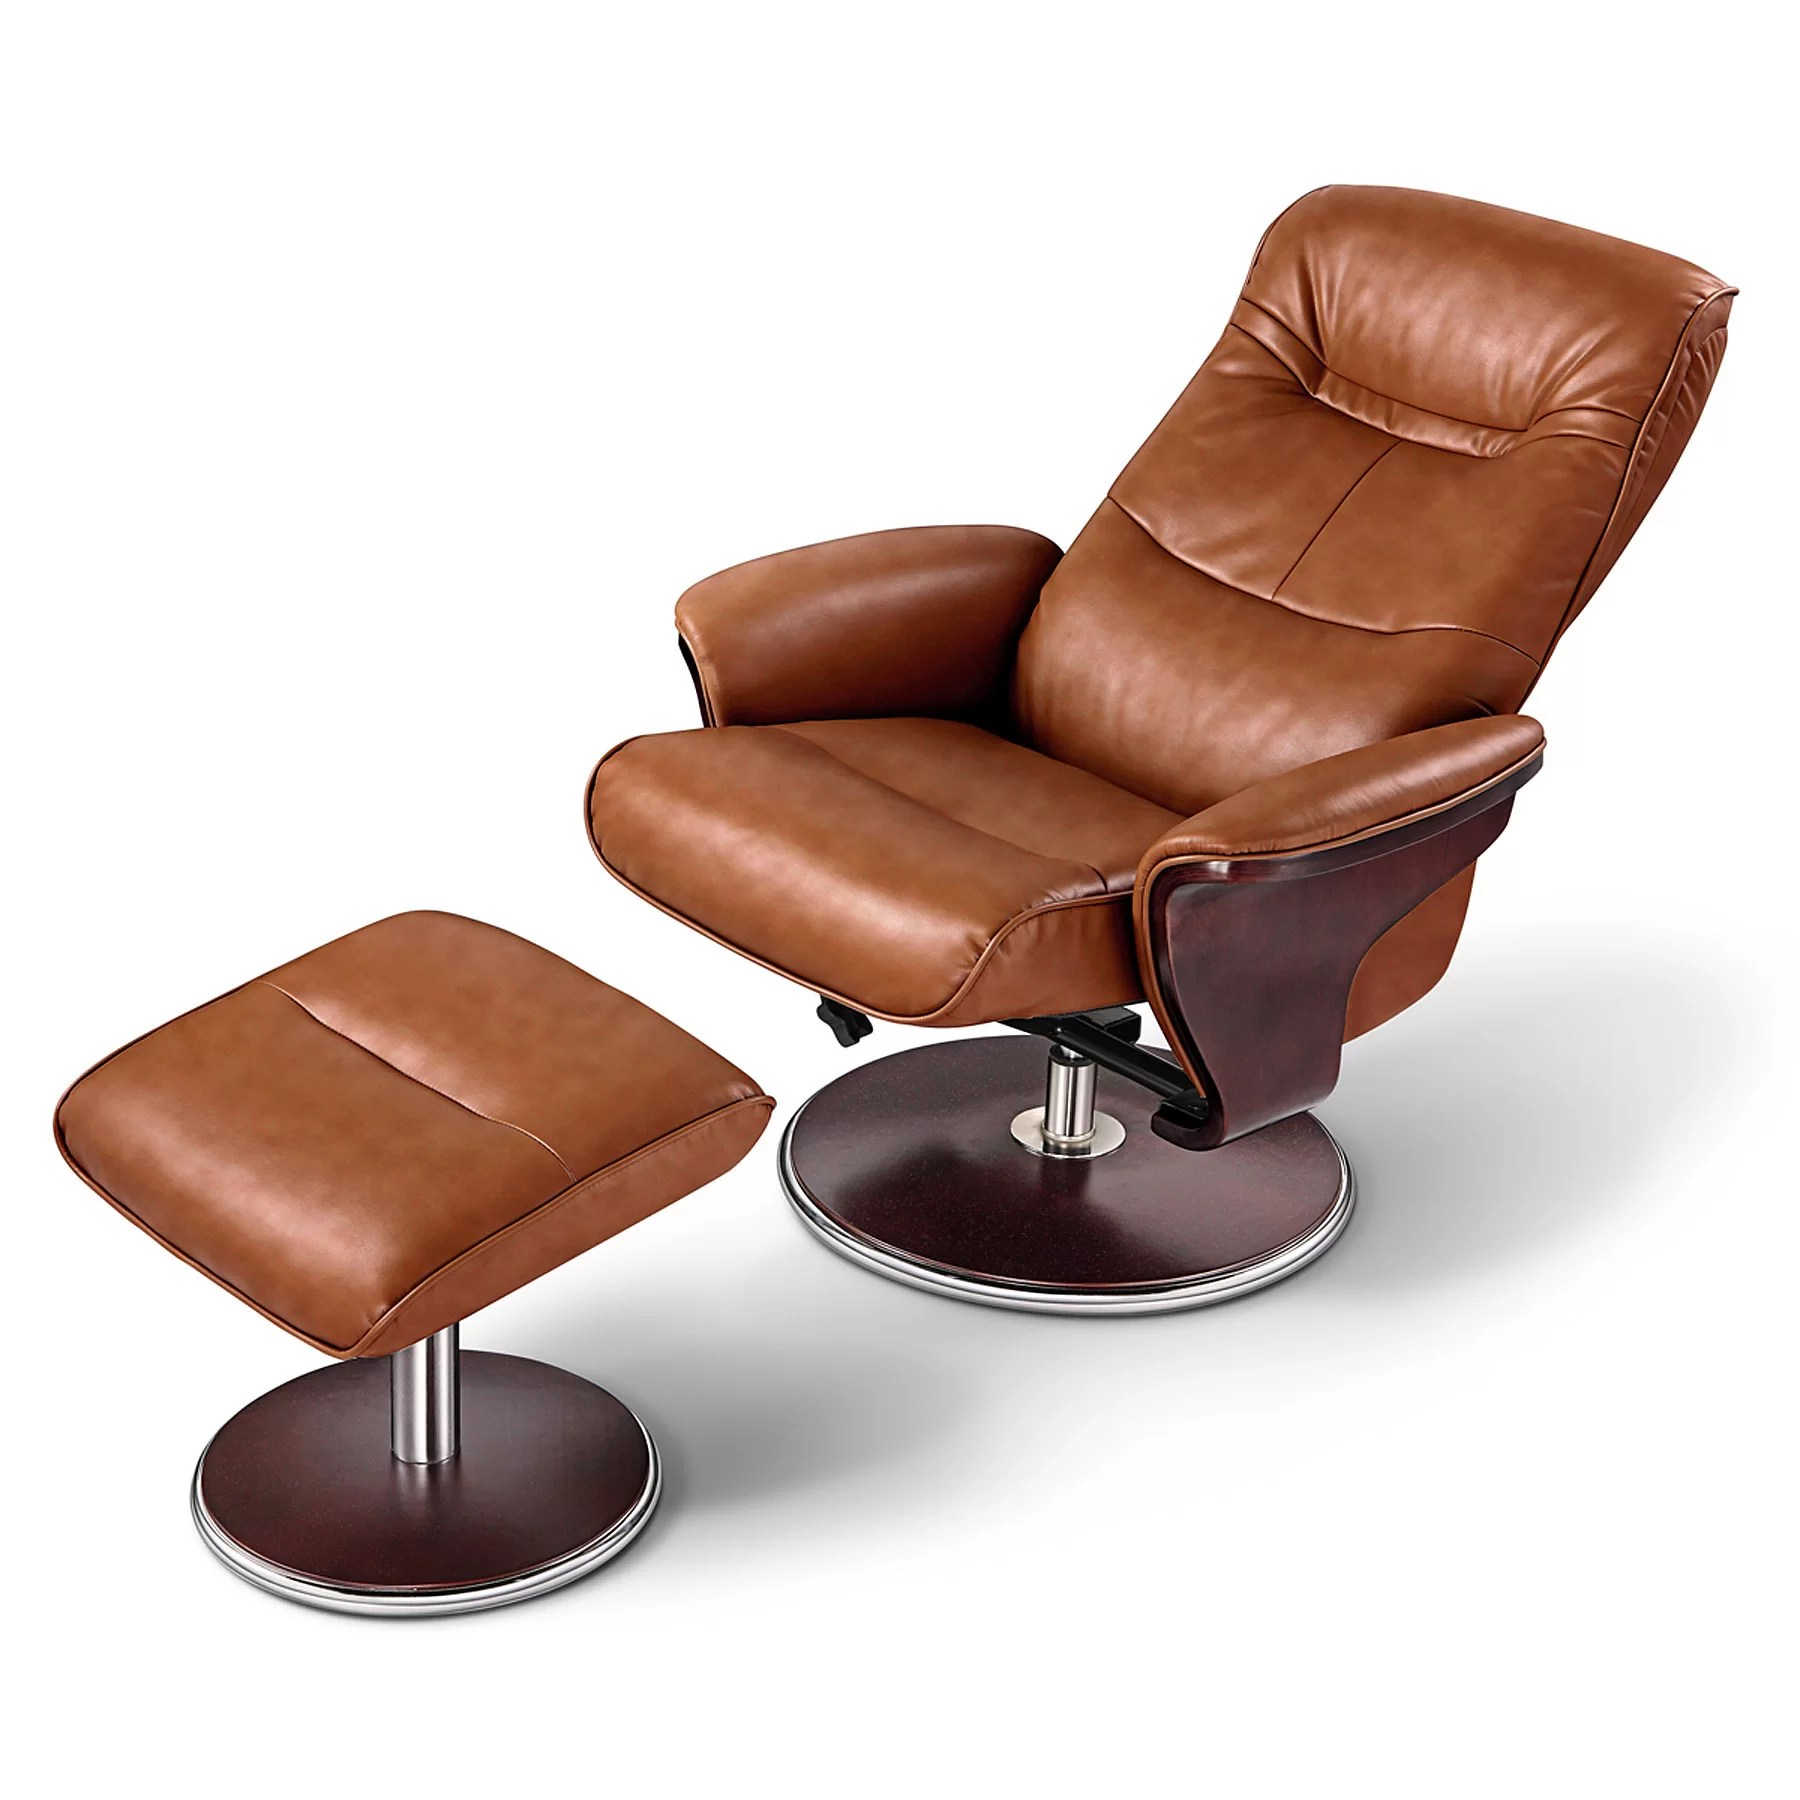 leather swivel recliner chair and ottoman garden metal folding chairs artiva usa milano ebay